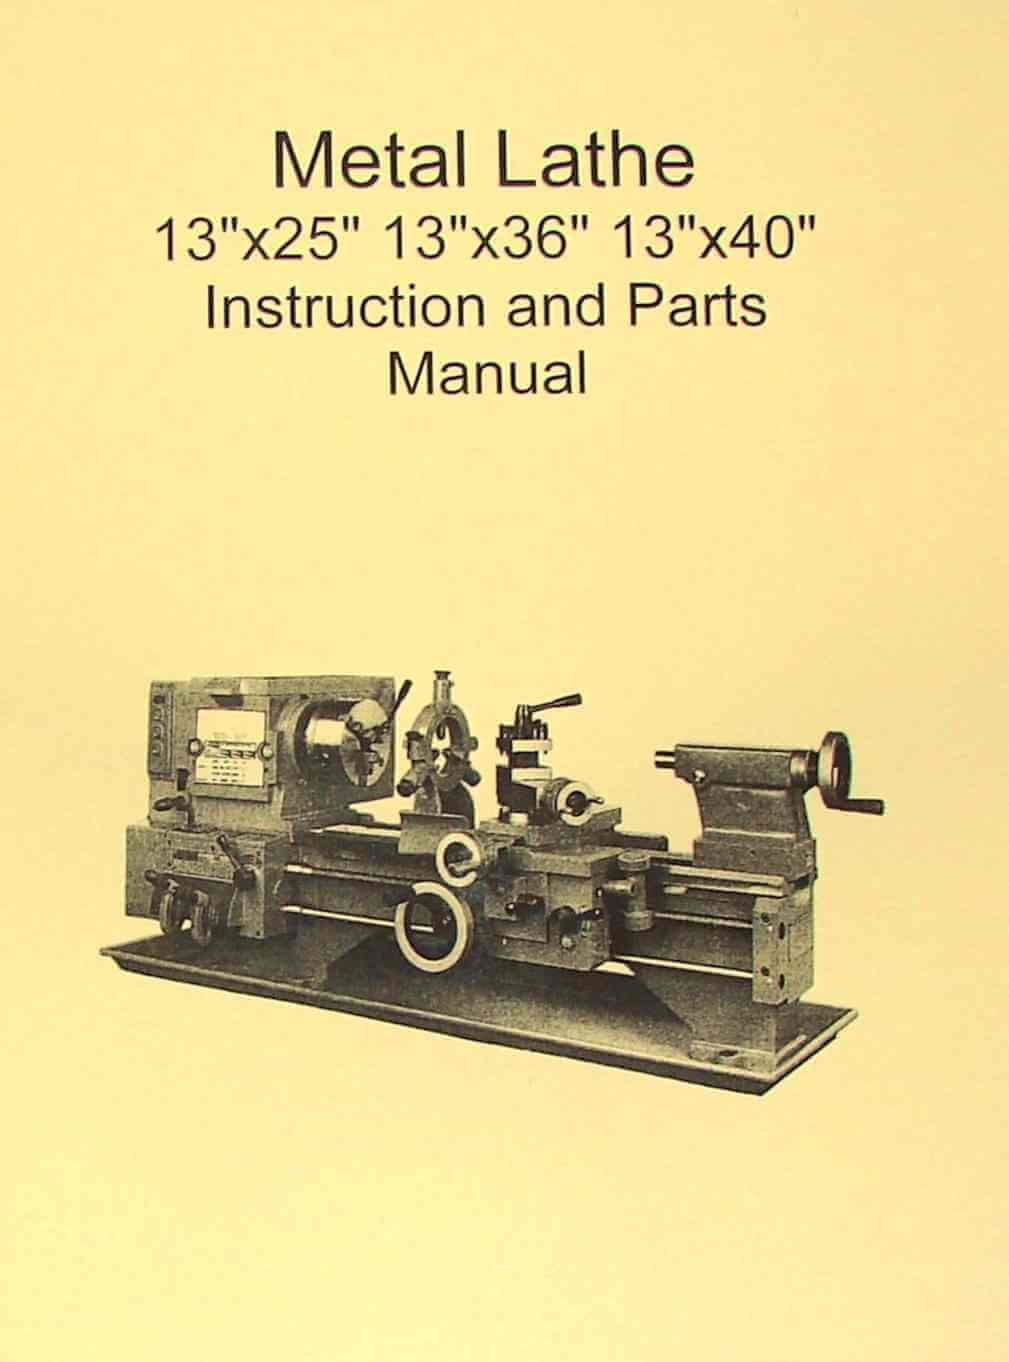 Magnificent Jet Lathe Wiring Diagram Wiring Diagram Caraccident5 Cool Chair Designs And Ideas Caraccident5Info